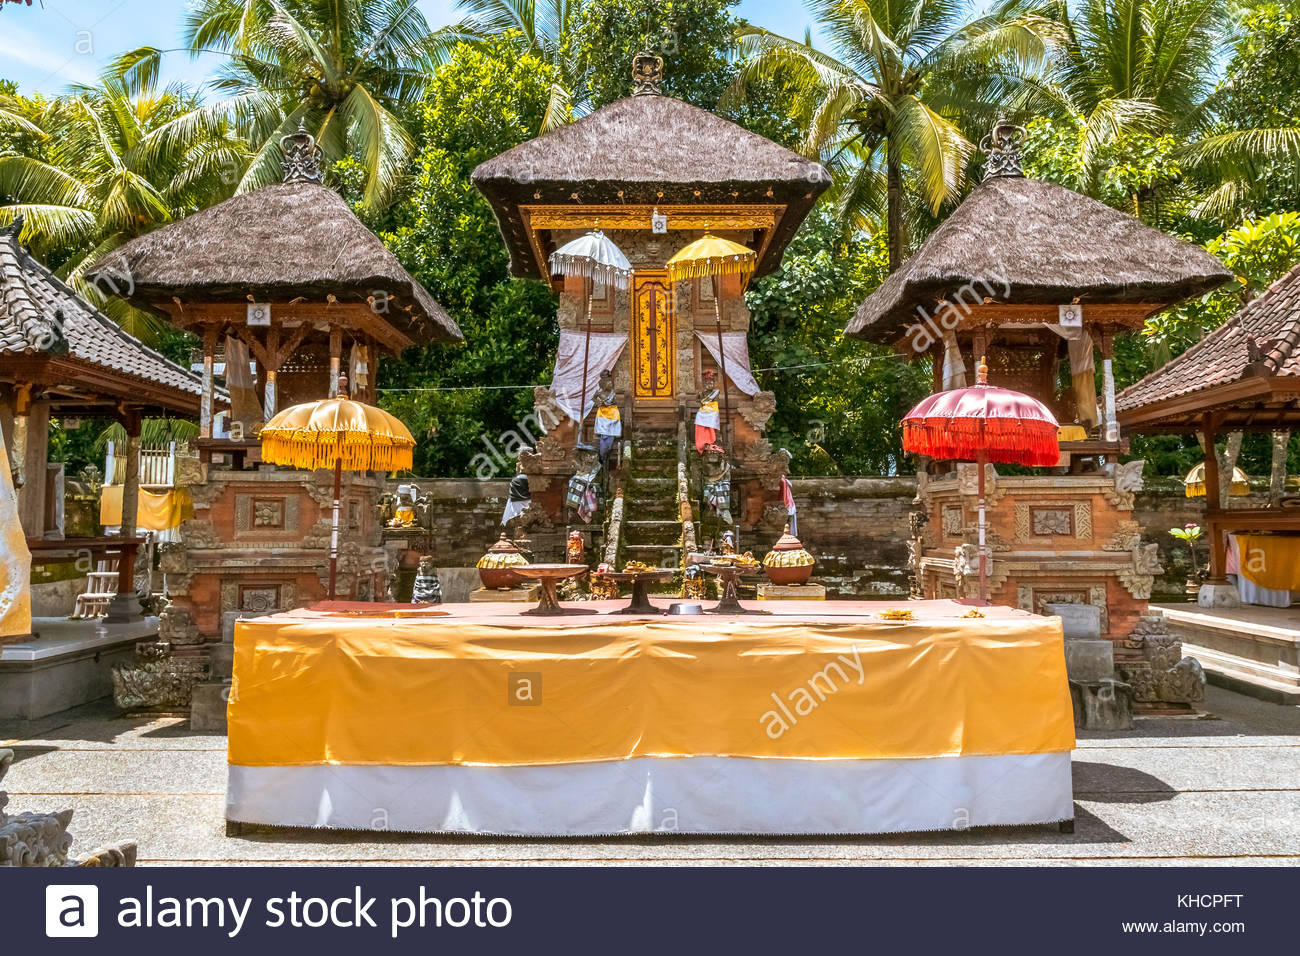 balinese temple traditional. ceremony hinduist. bali. - Stock Image